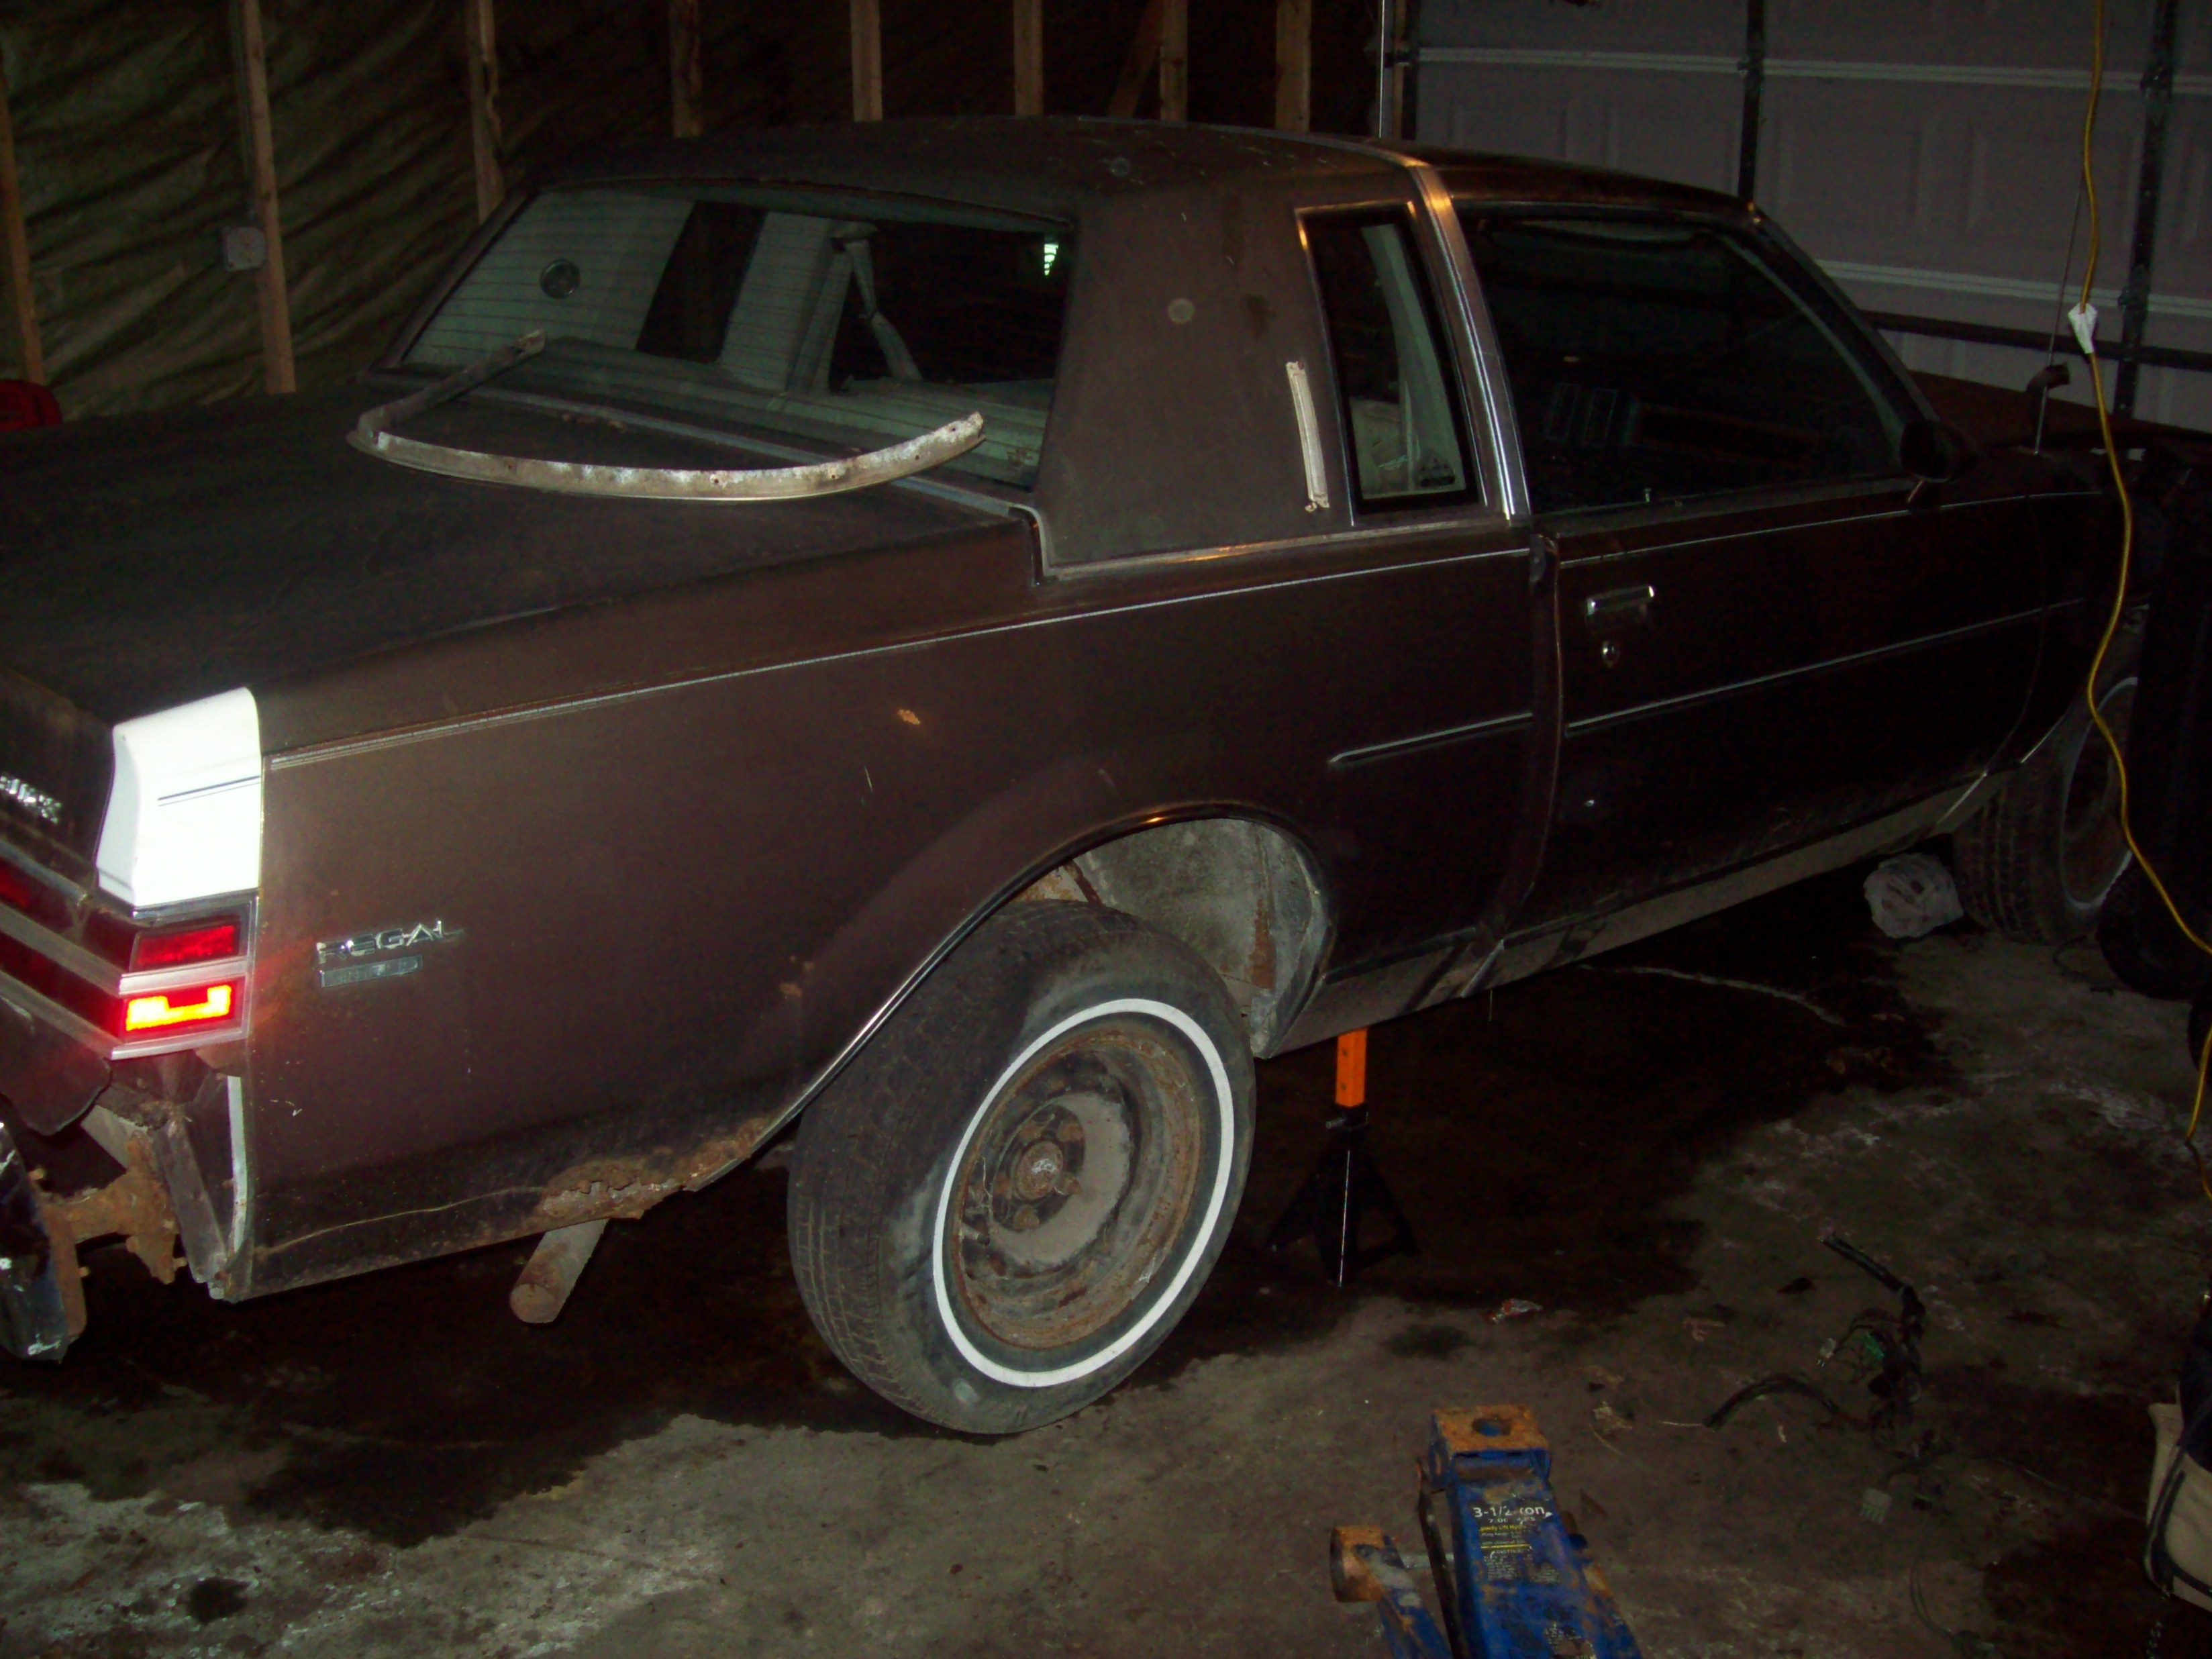 Buickboy24's 1984 Buick Regal